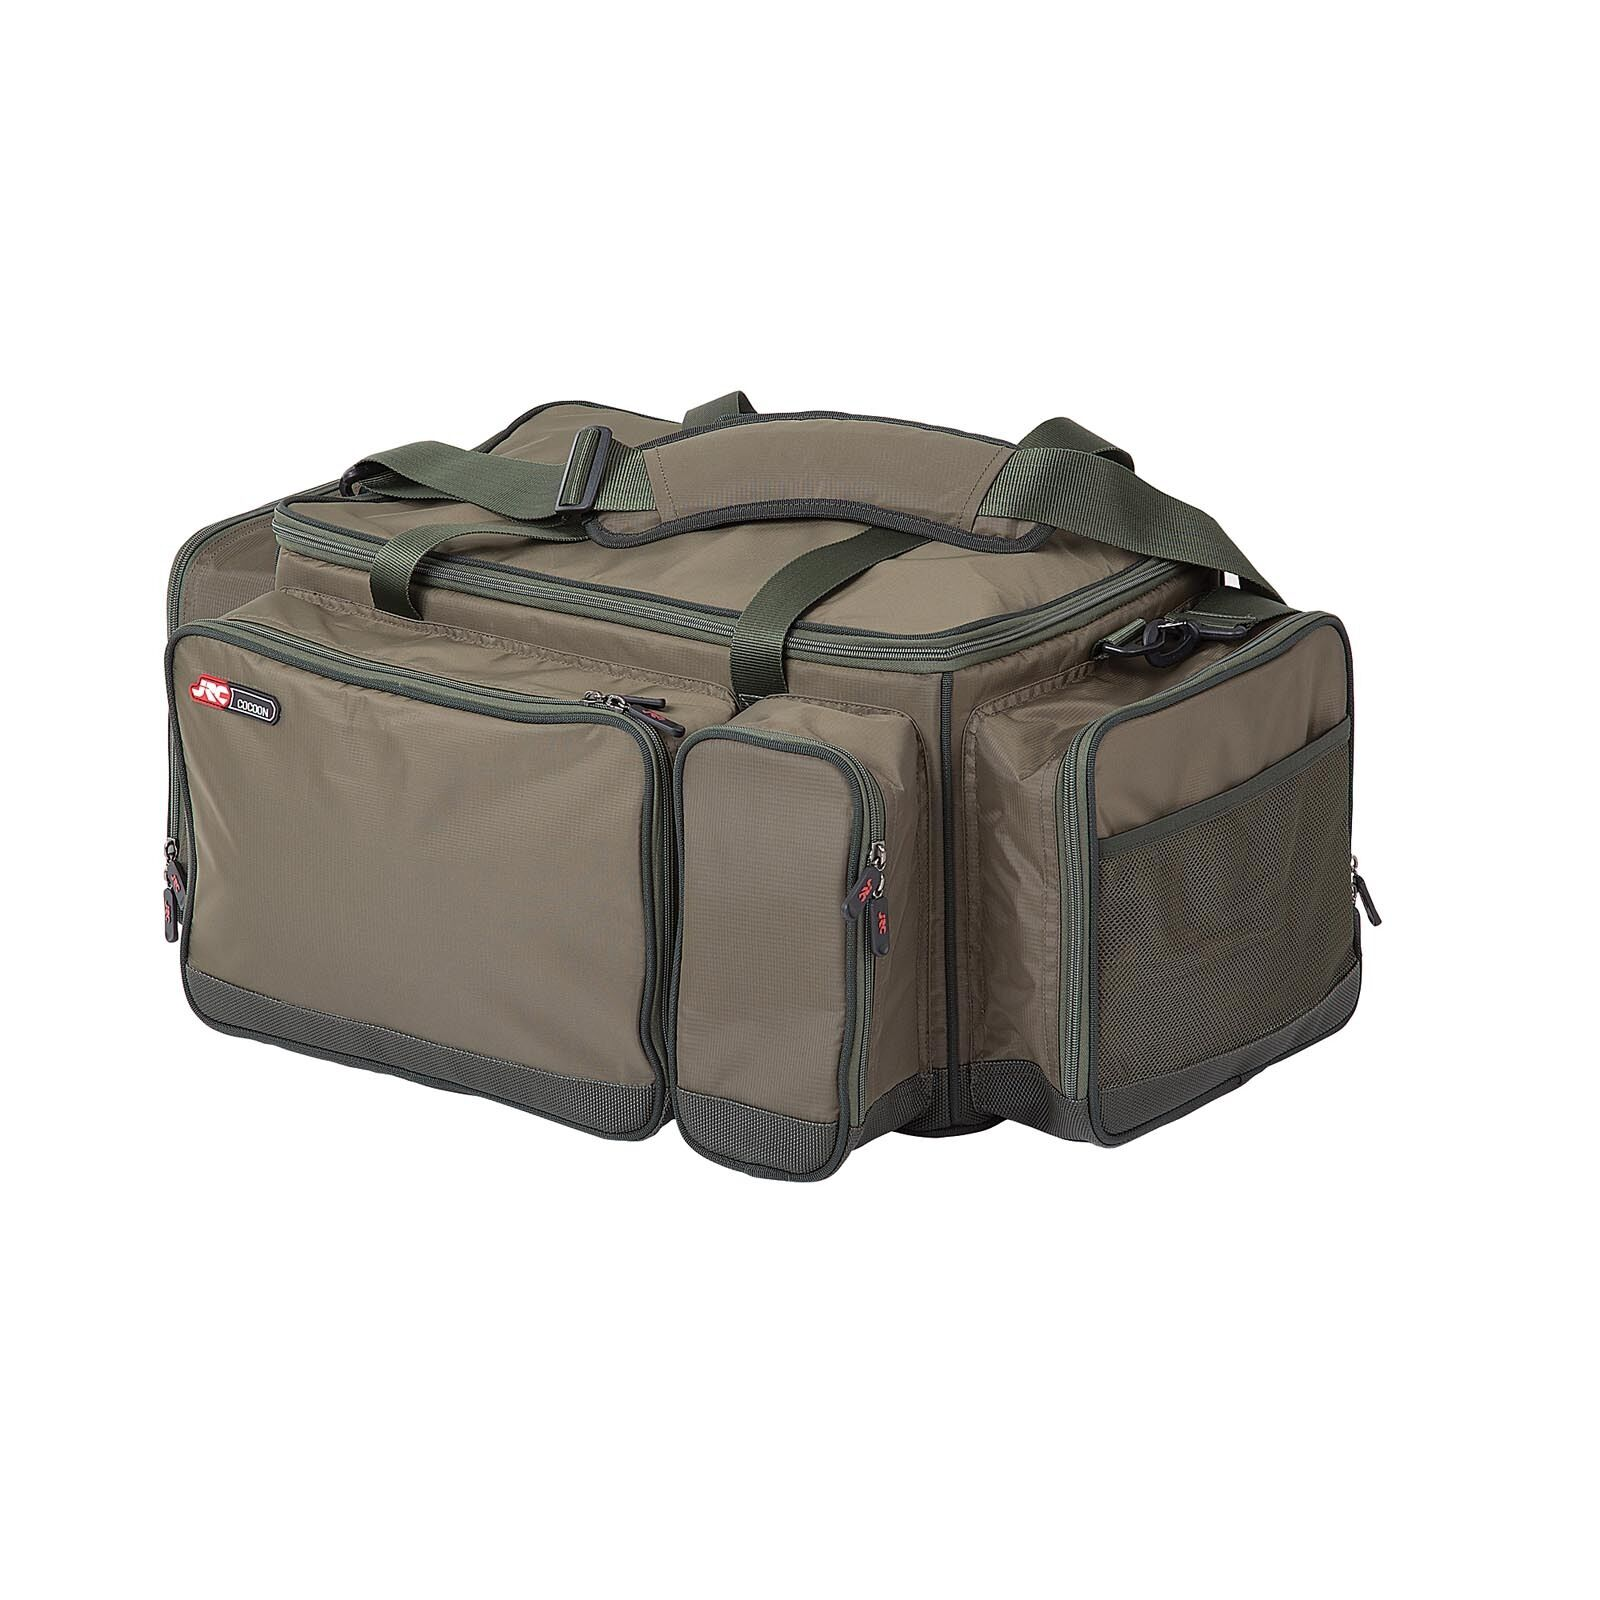 JRC Compartments Carp Fishing Cocoon Carryalls With Large Compartments JRC - Large & XL Available 711b52